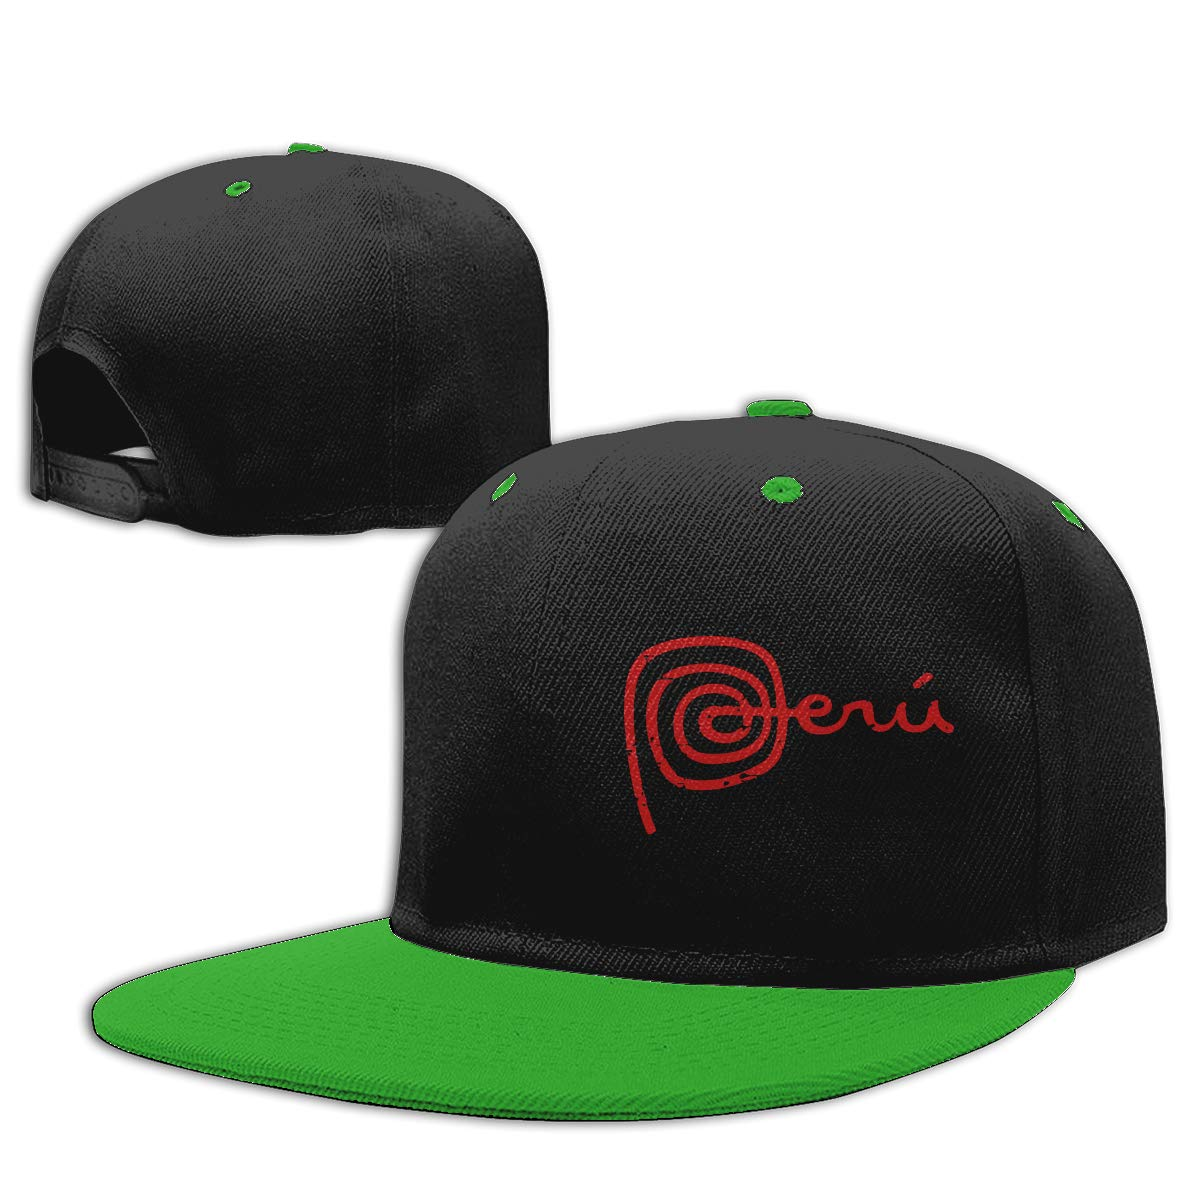 Peru Logo Printed Hip Hop Baseball Caps NMG-01 Men Womens Snapback Cap